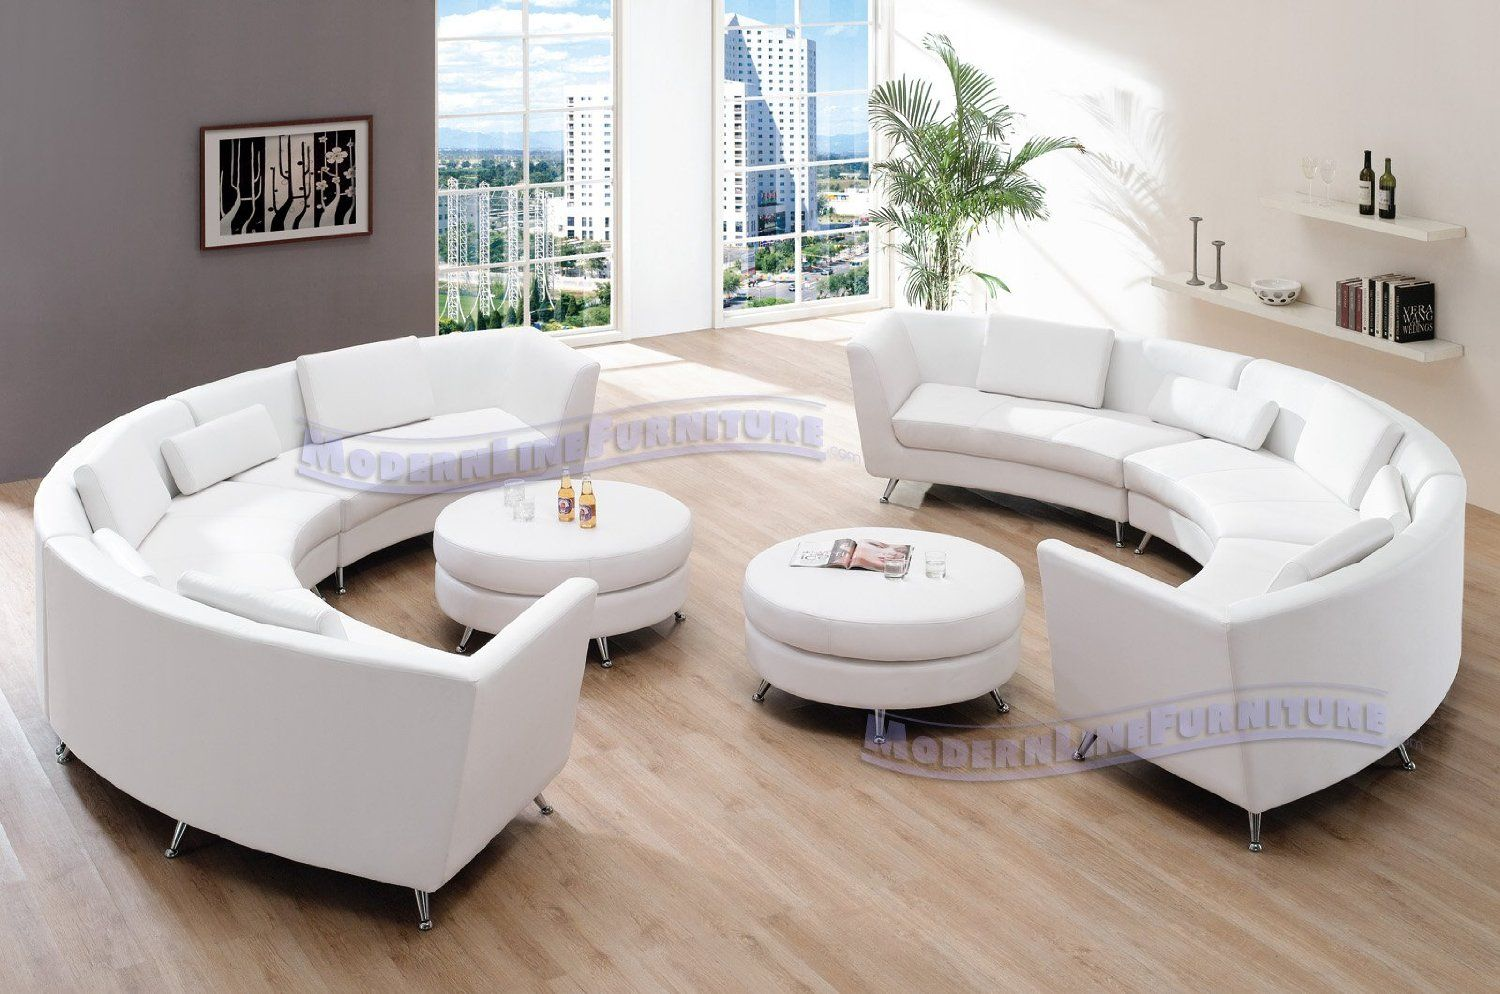 amazon com living room furniture well decorated pictures exclusive modern vip sectional with two white leather sofas and 2 ottomans decor